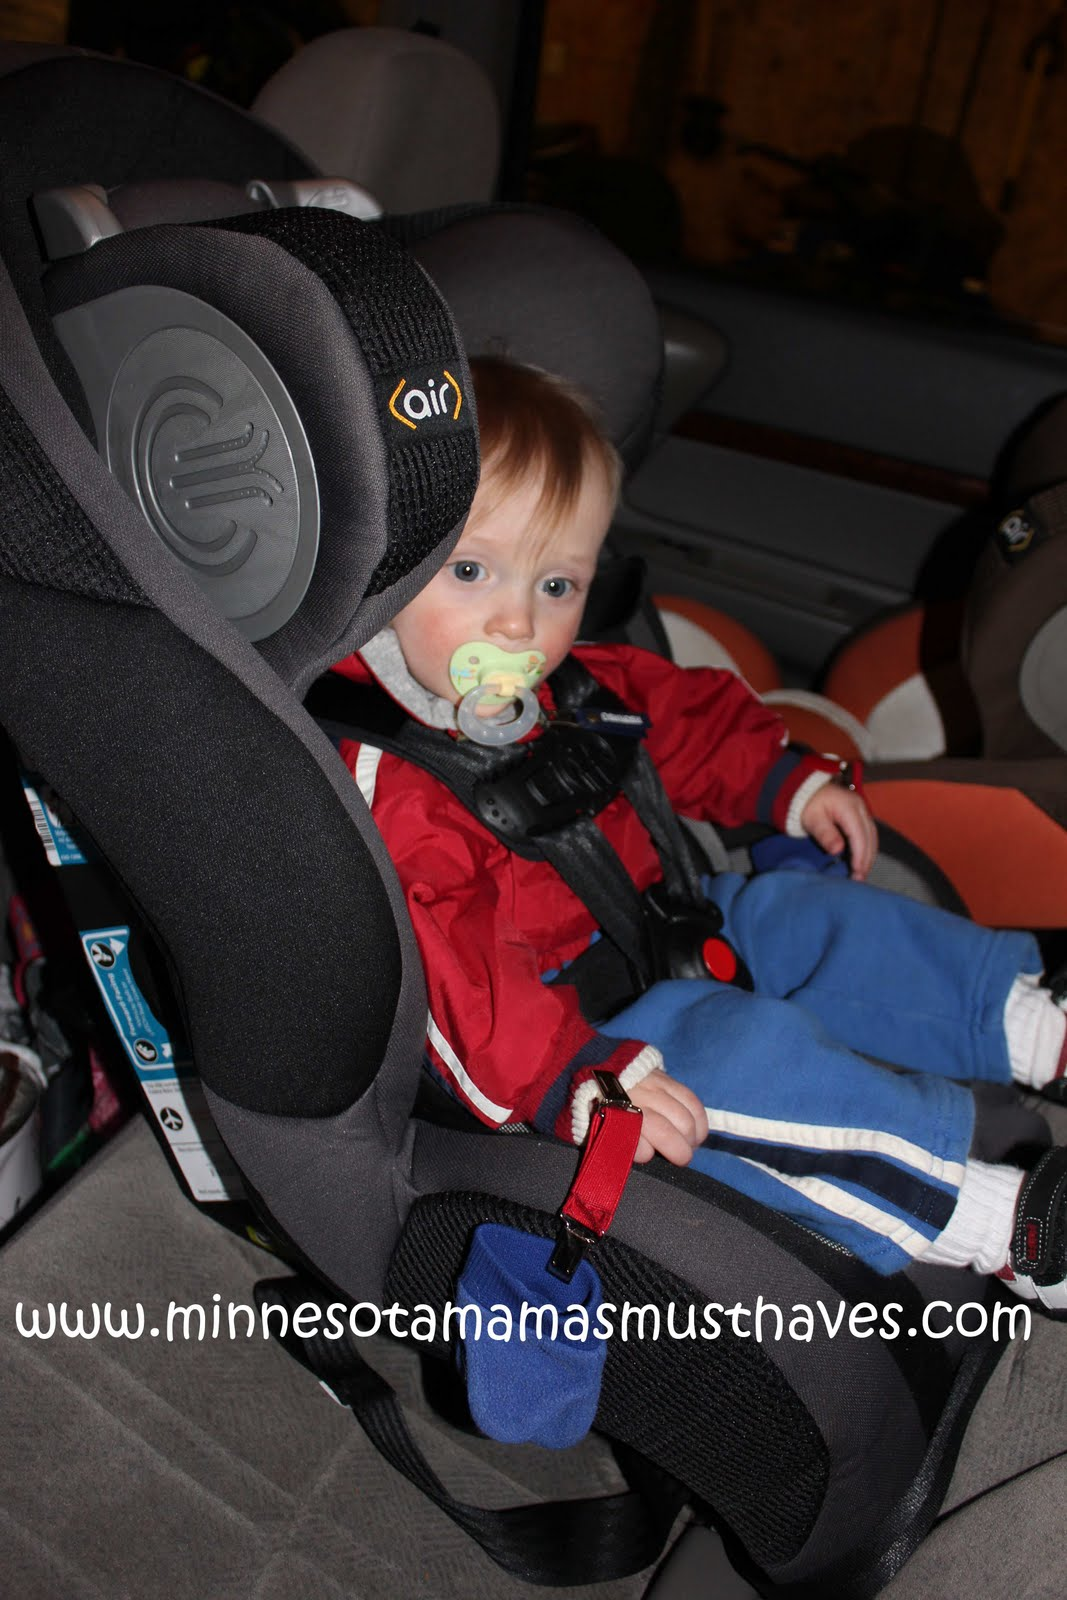 First Of All Let Me Say This Car Seat Is Very User Friendly It Easy To Install With The Latch System And Adjust Your Child S Height